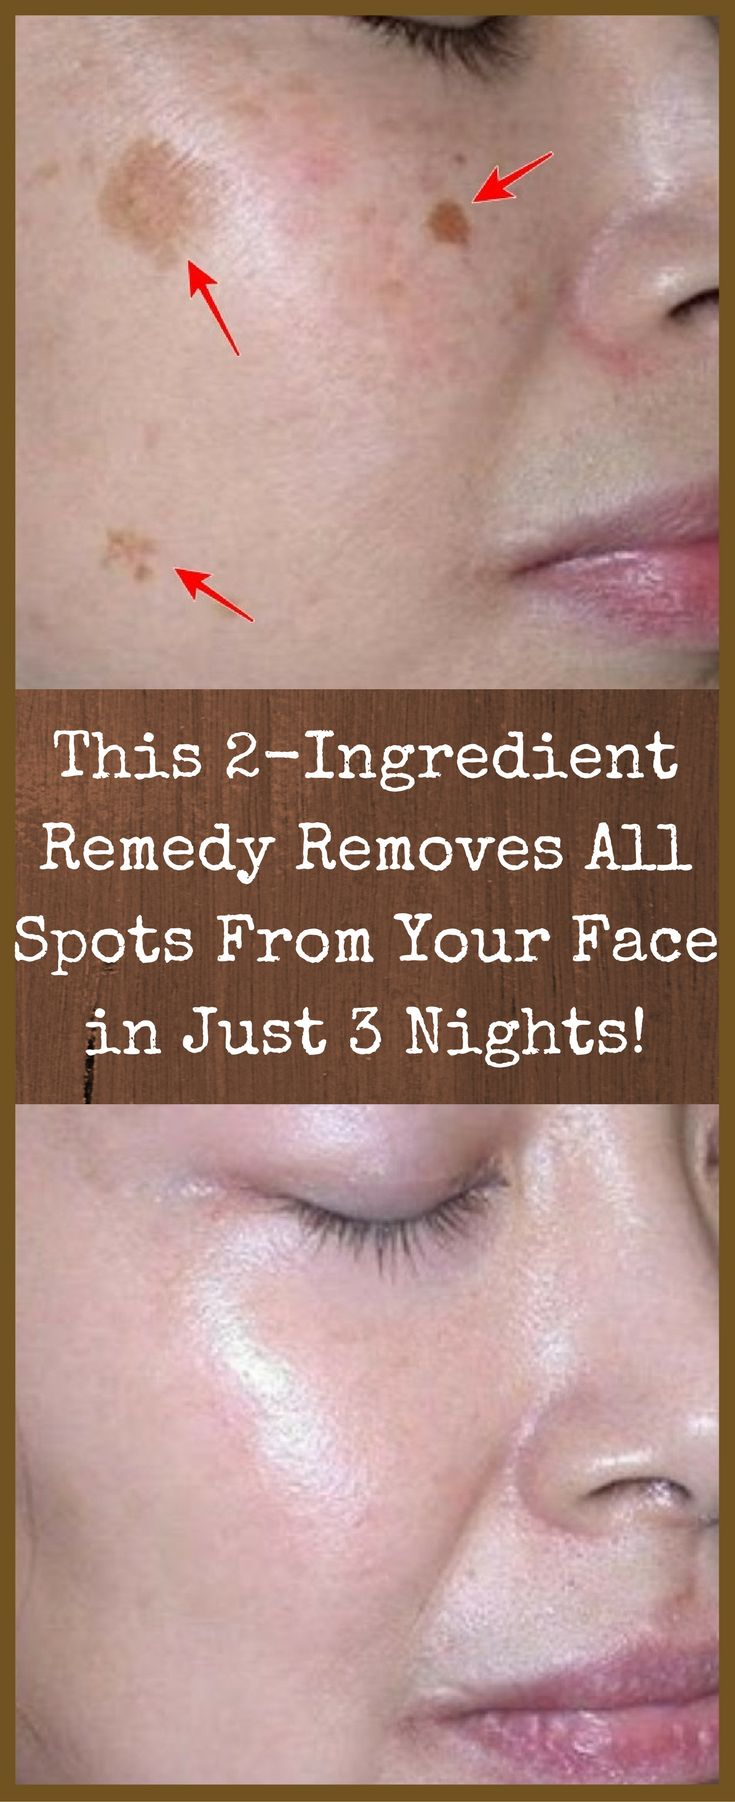 AMAZING: This 2-Ingredient Remedy Removes All Spots From Your Face in Just 3 Nights!